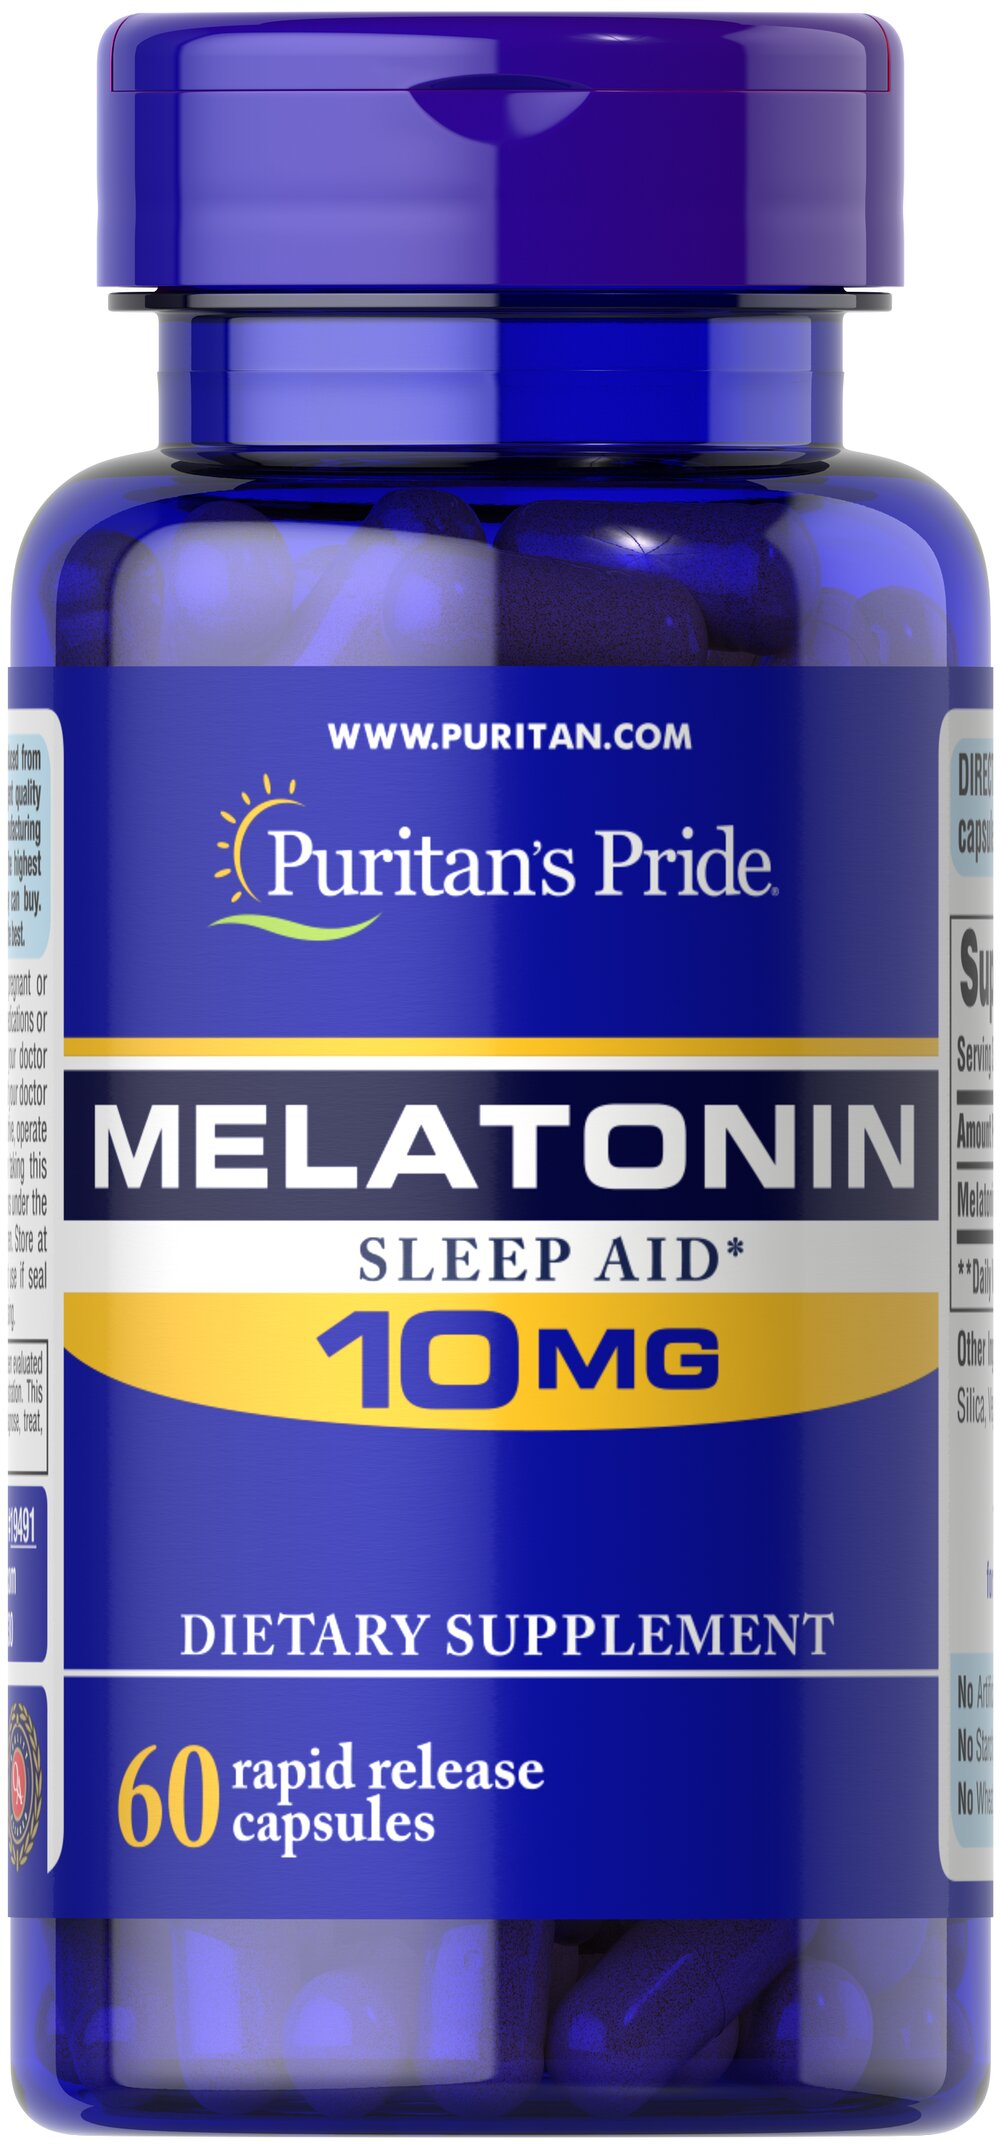 Melatonin 10 mg  60 Capsules 10 mg $6.49